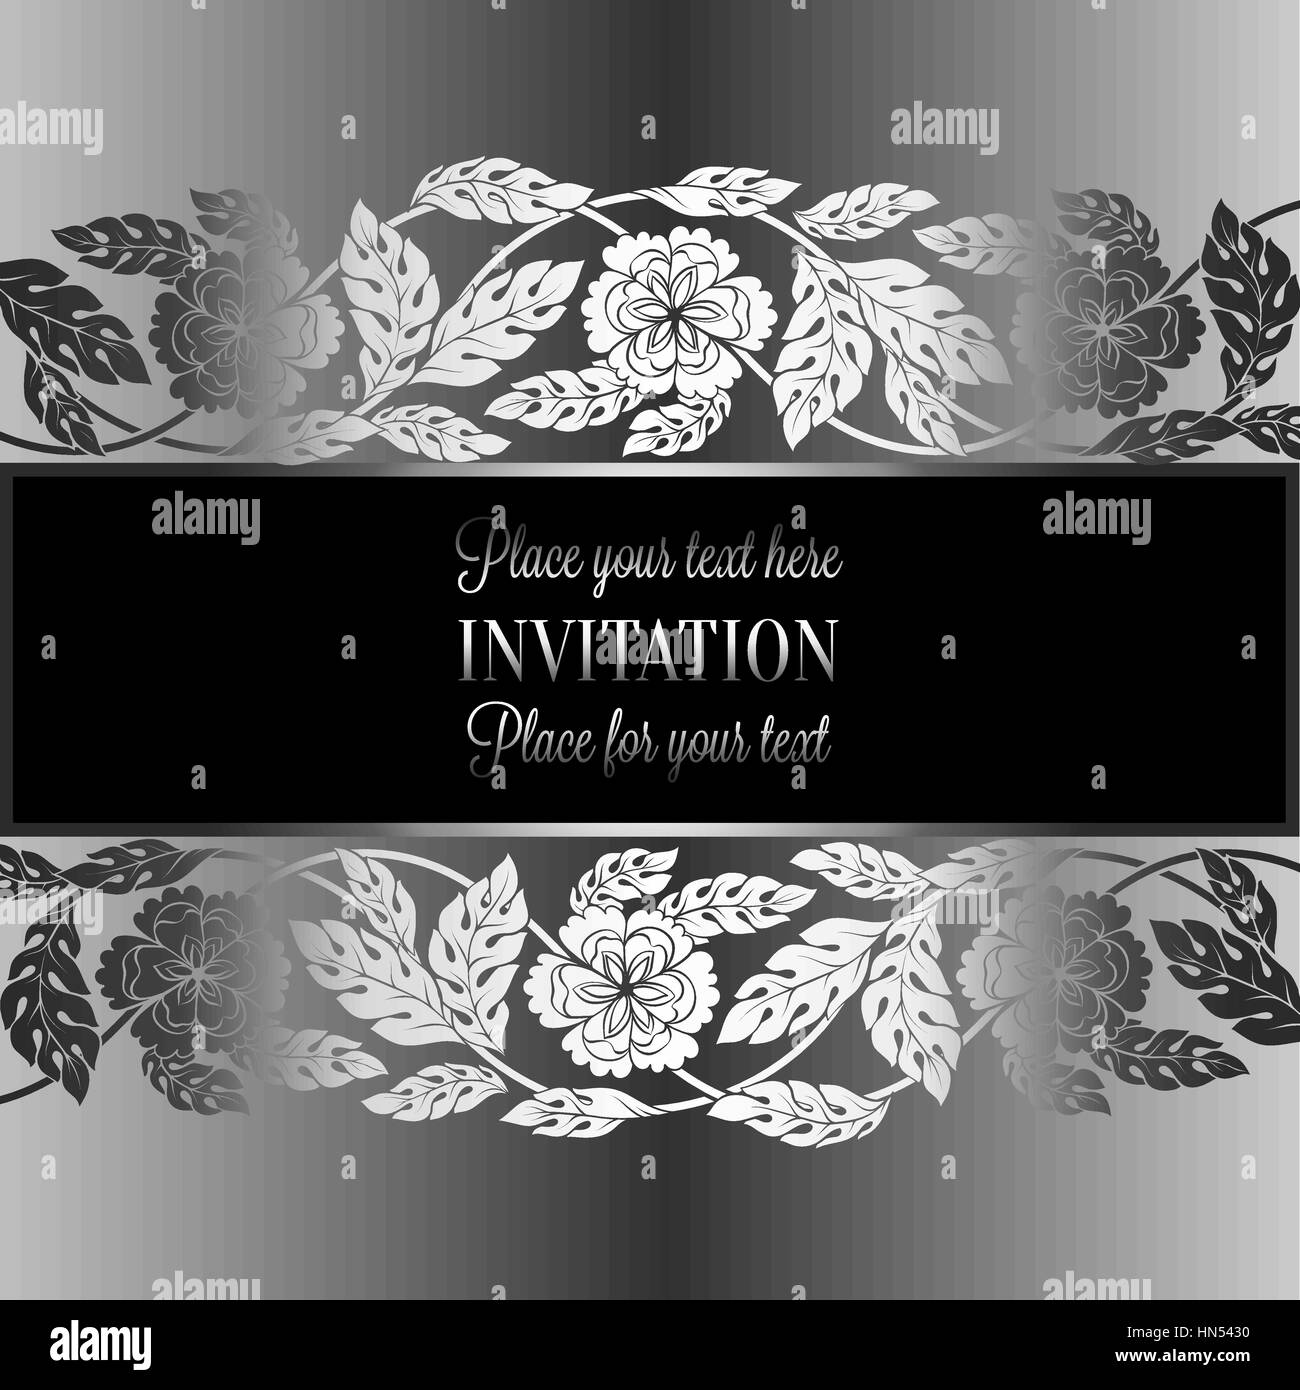 Floral Background With Antique Luxury Black Metal Silver And Gray Vintage Frame Victorian Bannerdamask Wallpaper Ornaments Invitation Card